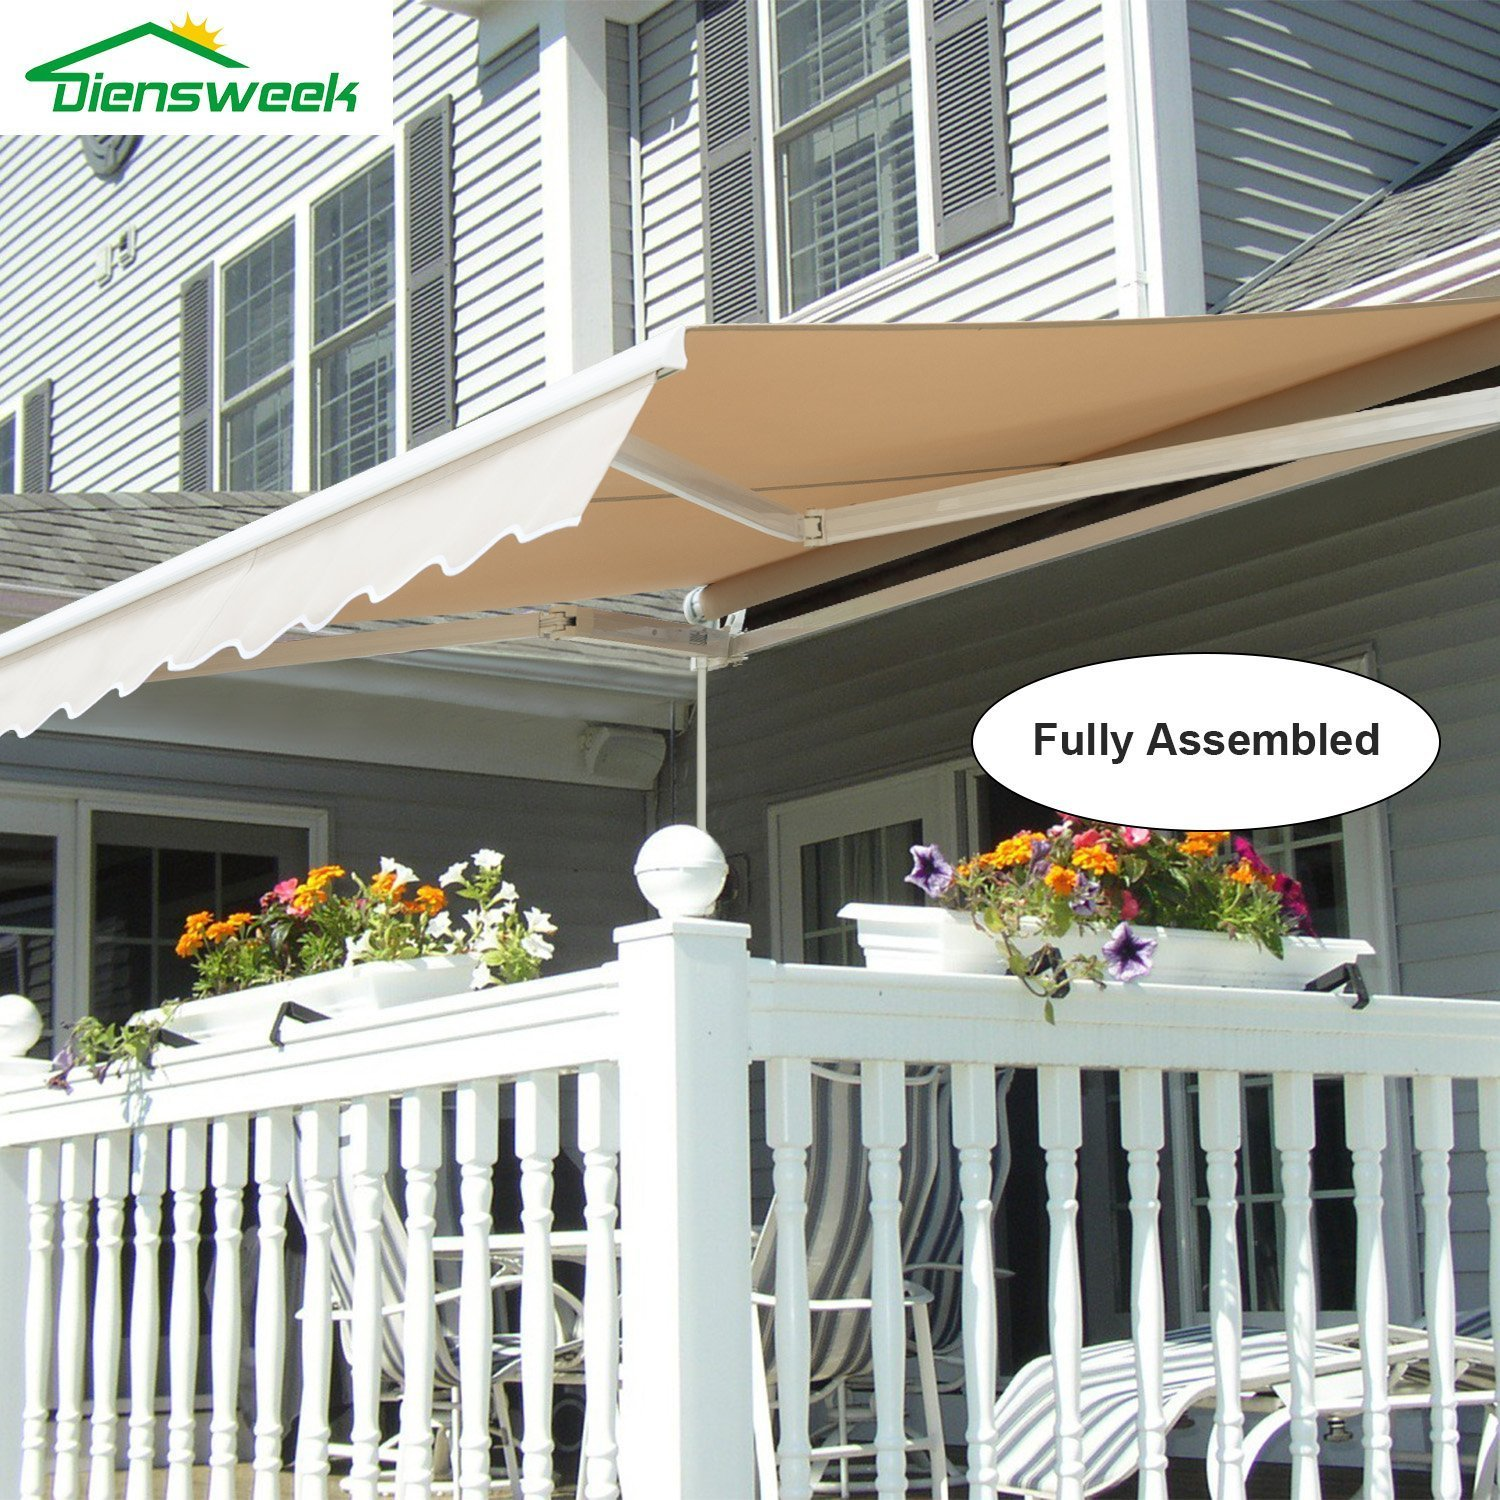 diy rv awnings shade door outdoor deck cler wonderful interiordiy lovely nd becuse backyard canopy for ideas awning decks window with